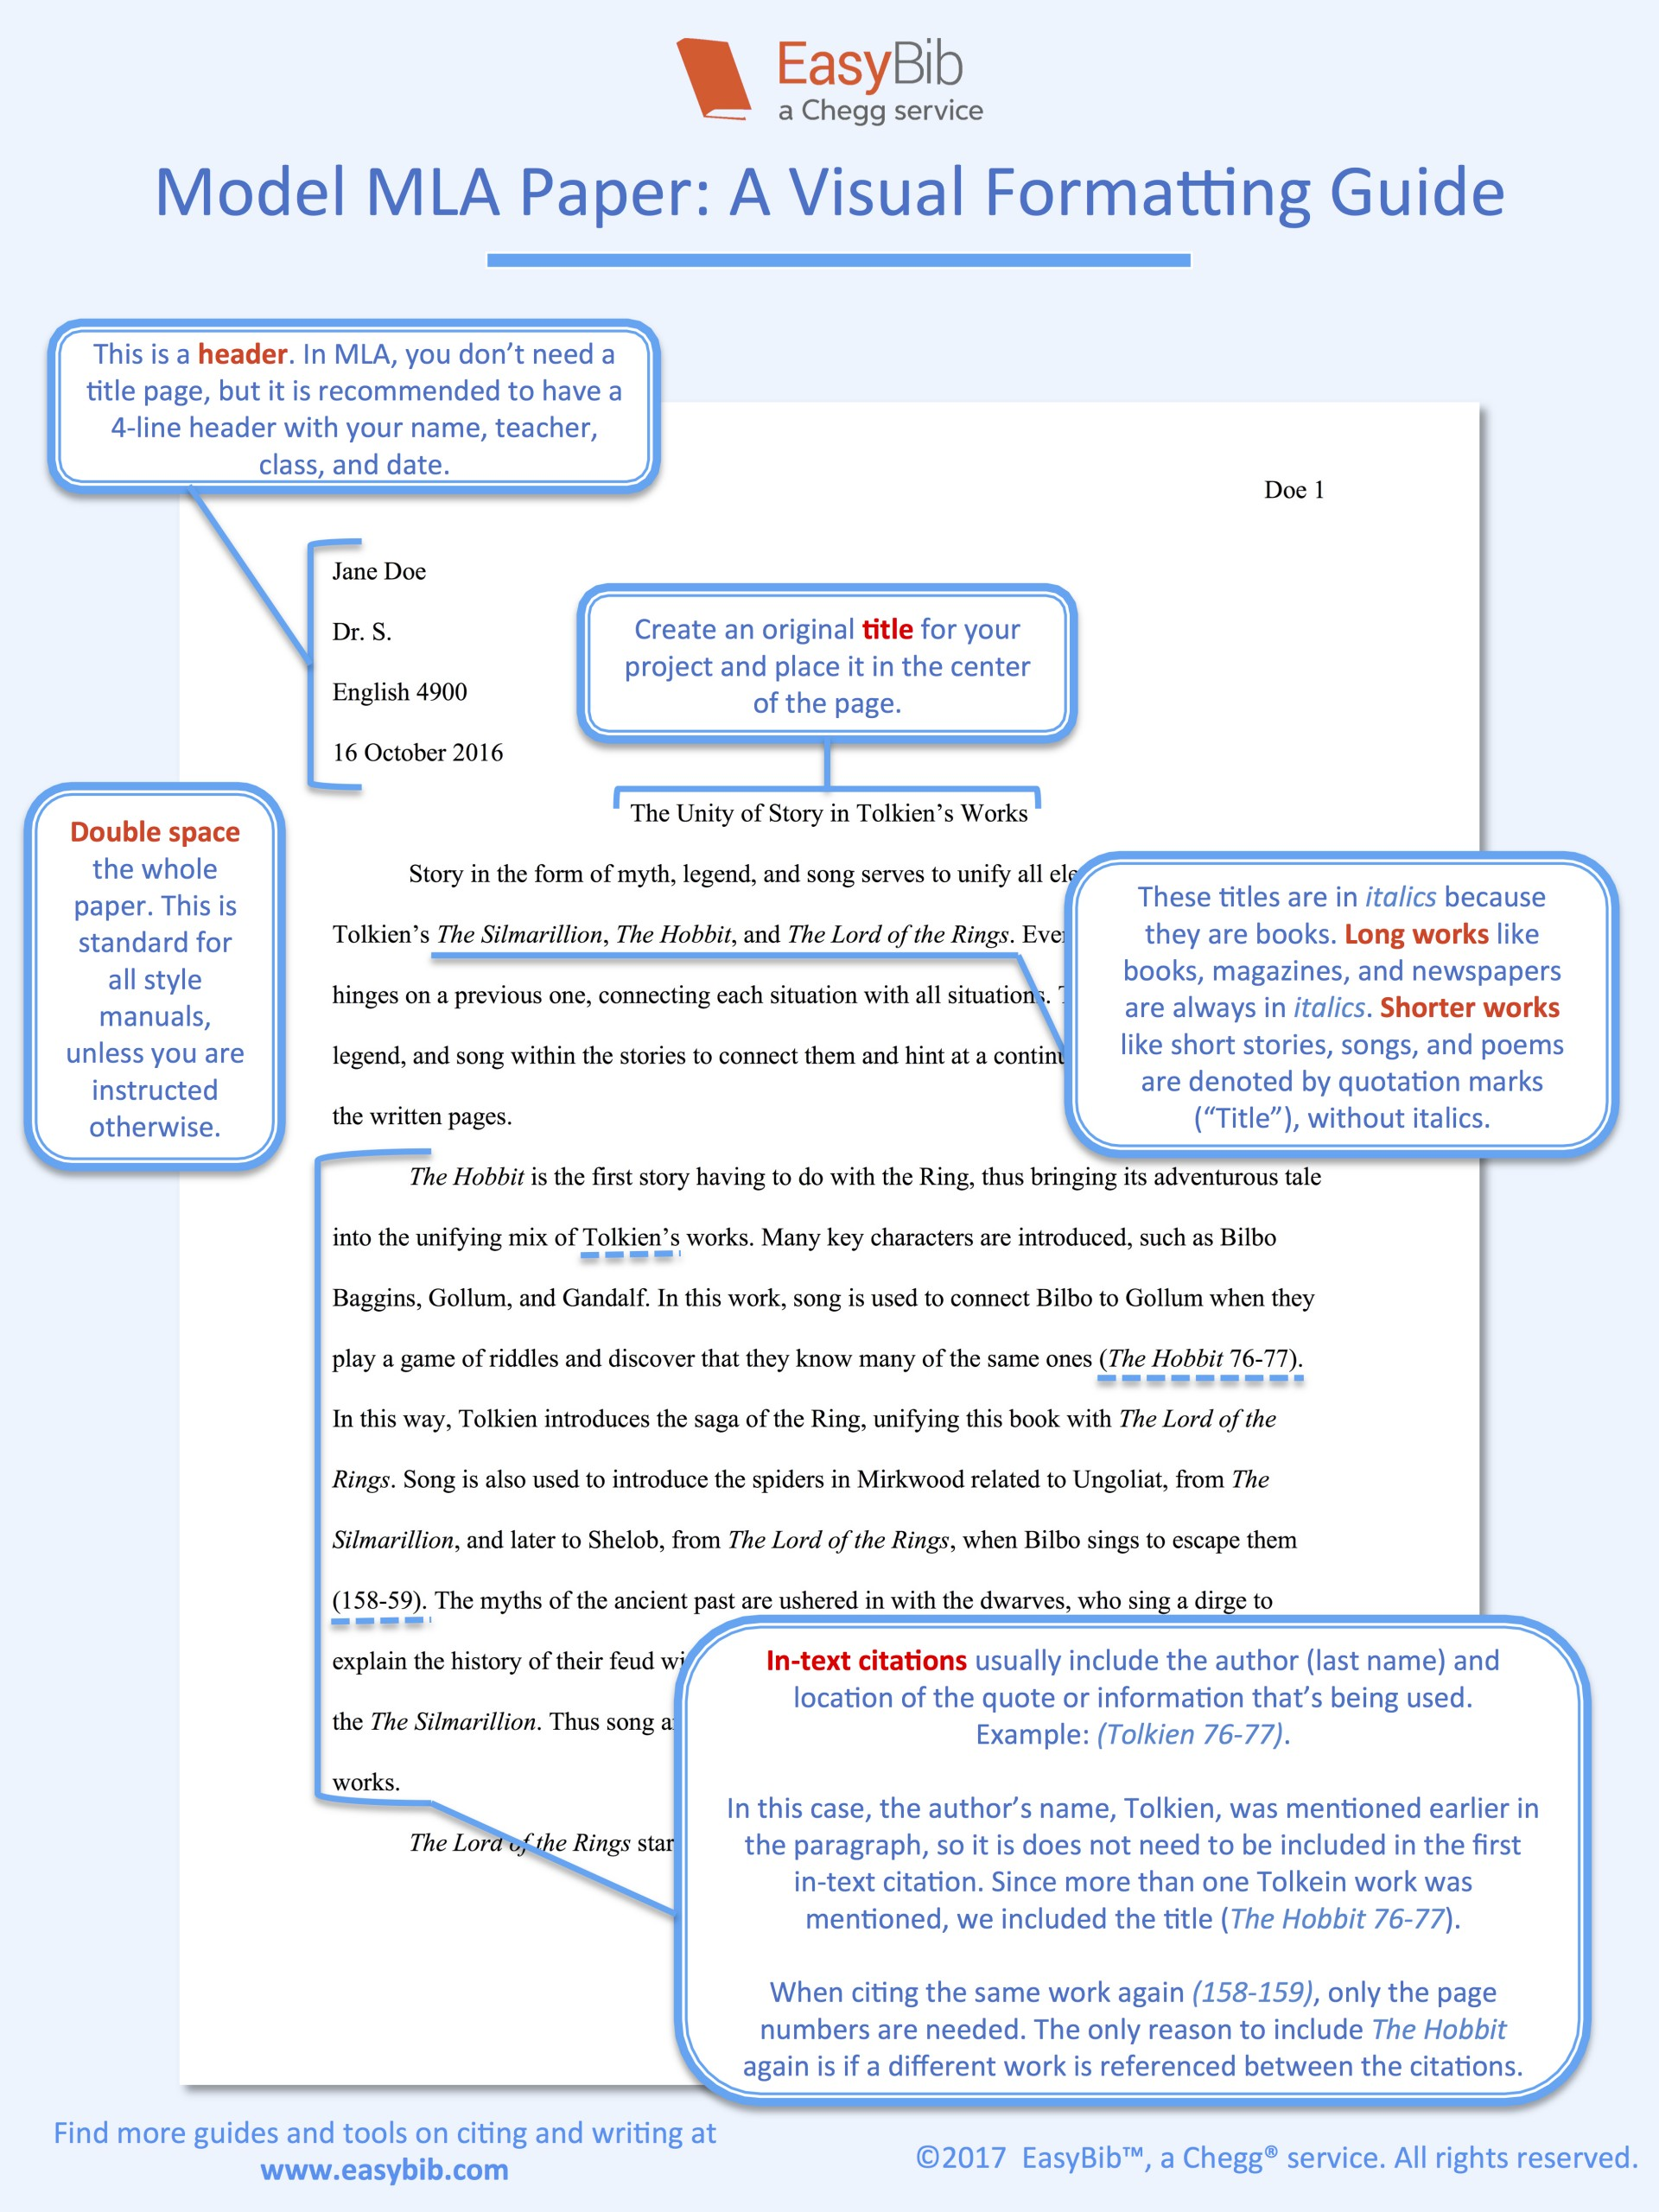 006 Research Paper Model Mla Style Exceptional Papers Format In Text Citation Sample 1920